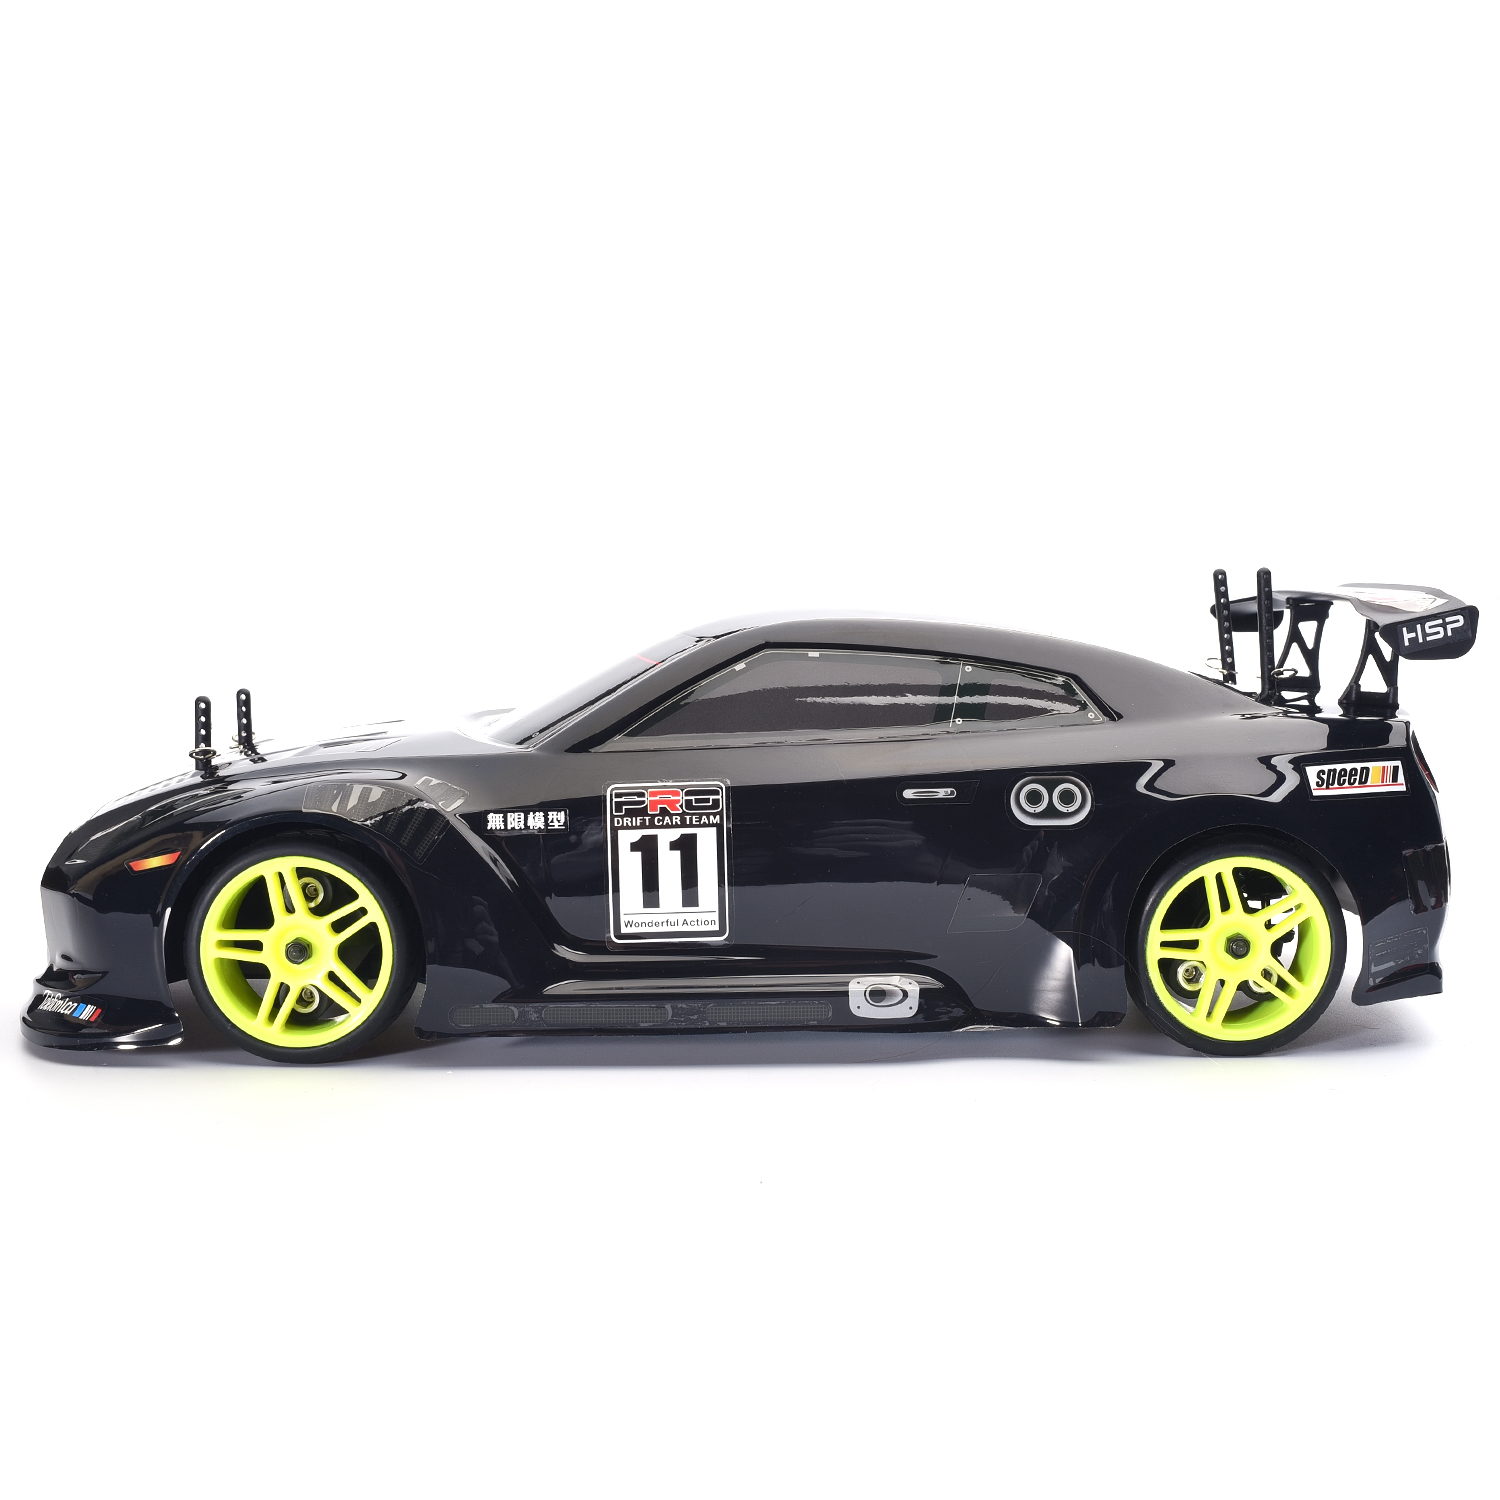 HSP Rc Drift Car 4wd 1/10 Scale On Road Racing Nitro Gas